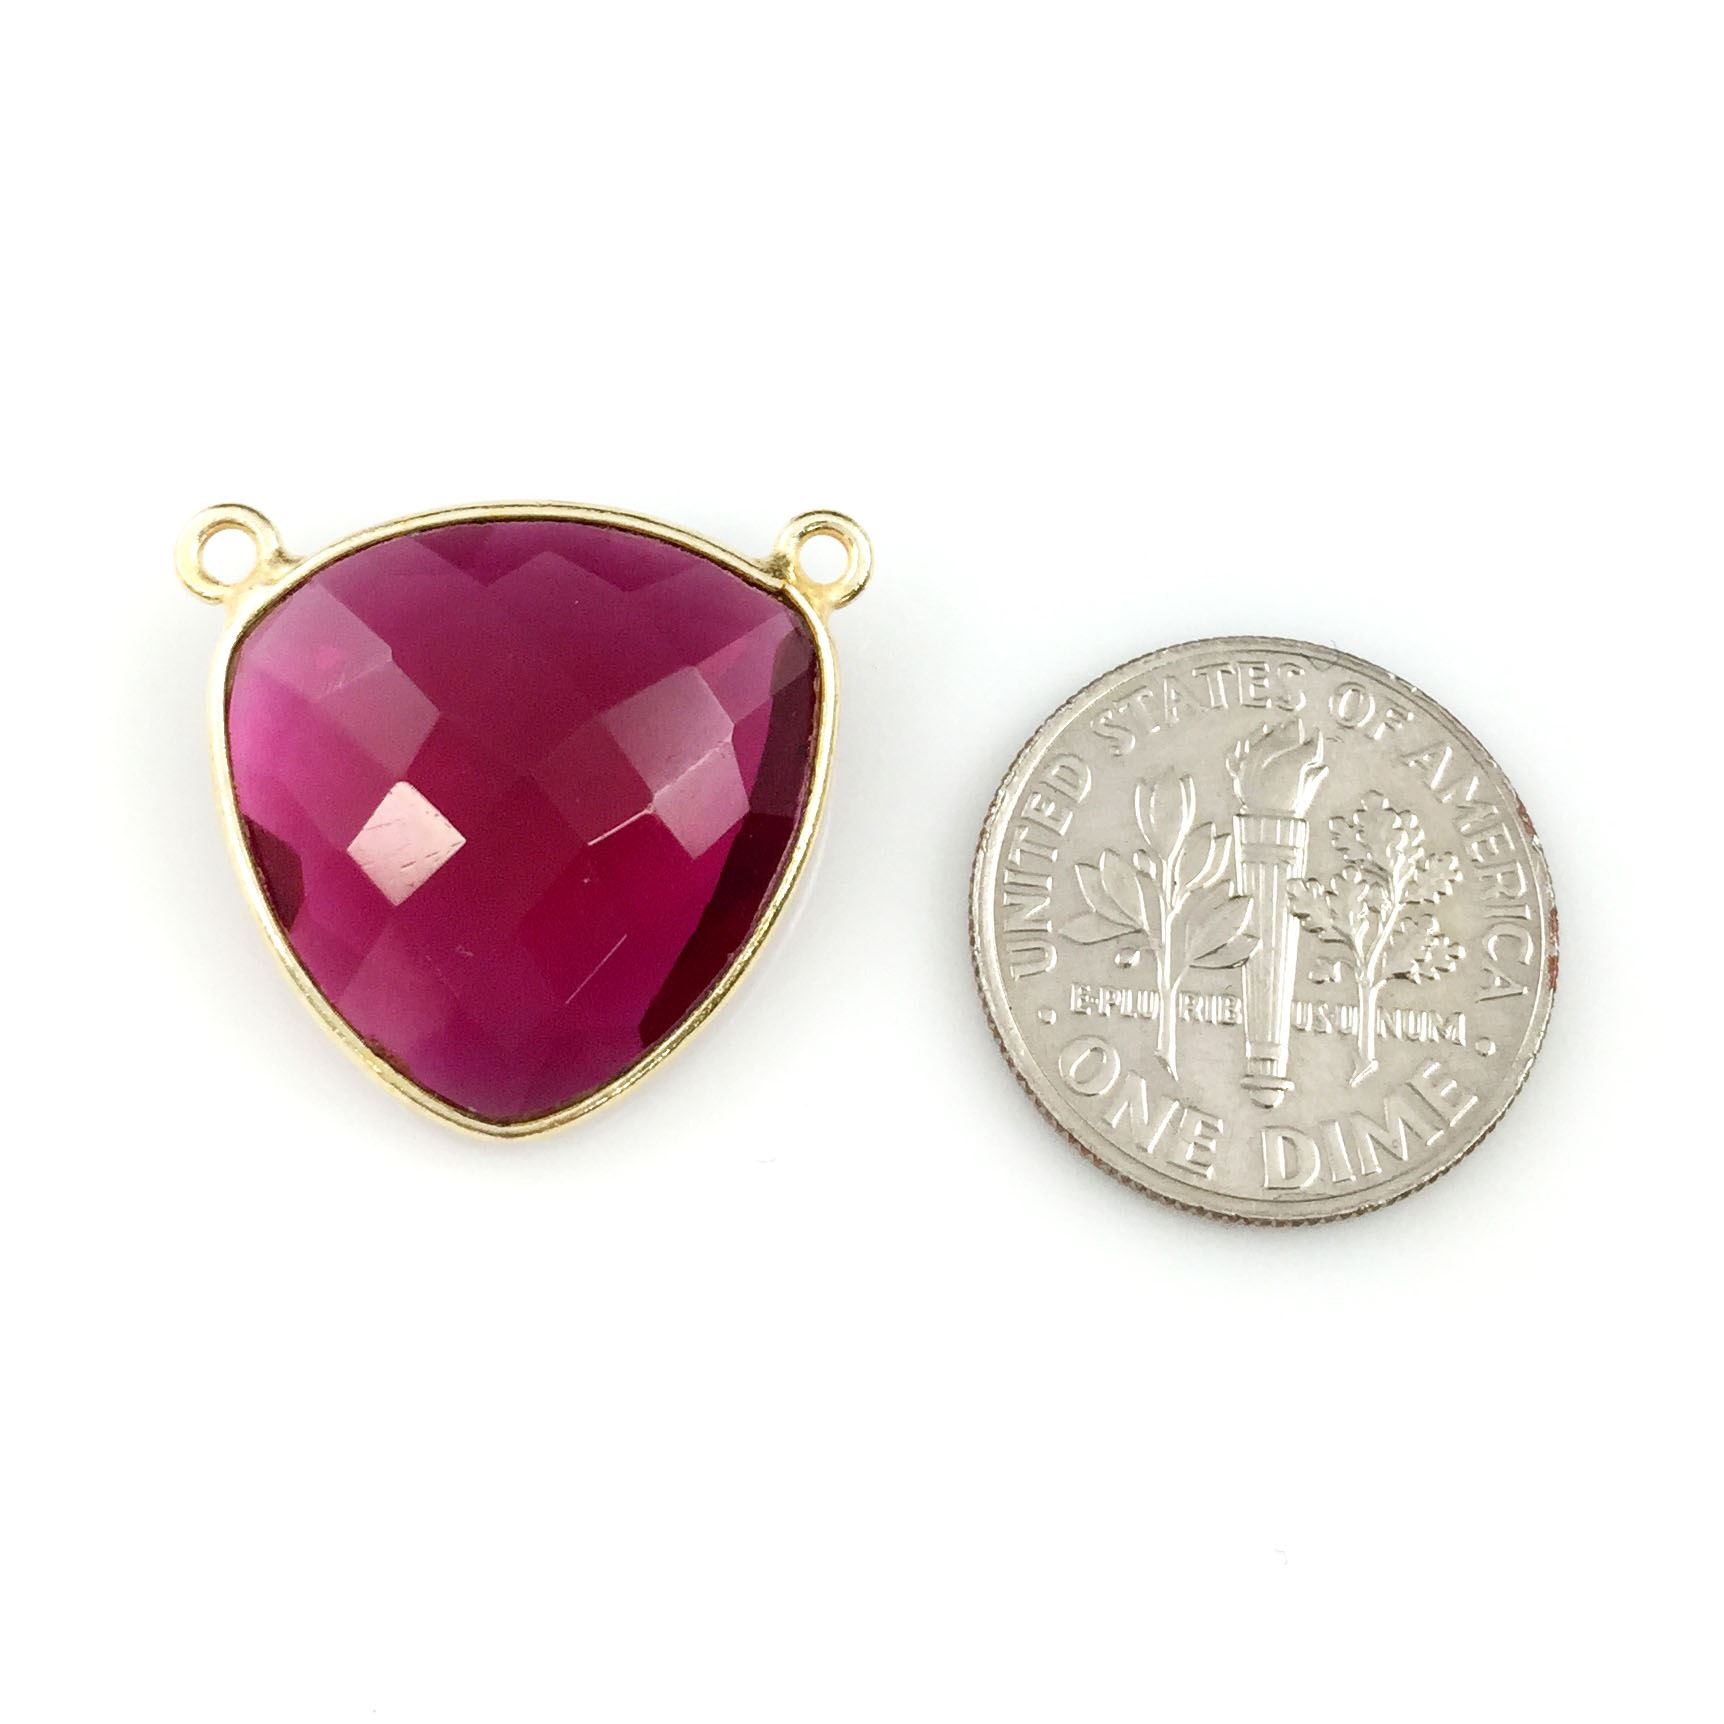 Bezel Gemstone Connector Pendant - Rubylite Quartz - Gold plated Sterling Silver - Large Trillion Shaped Faceted - 18 mm - 1 piece